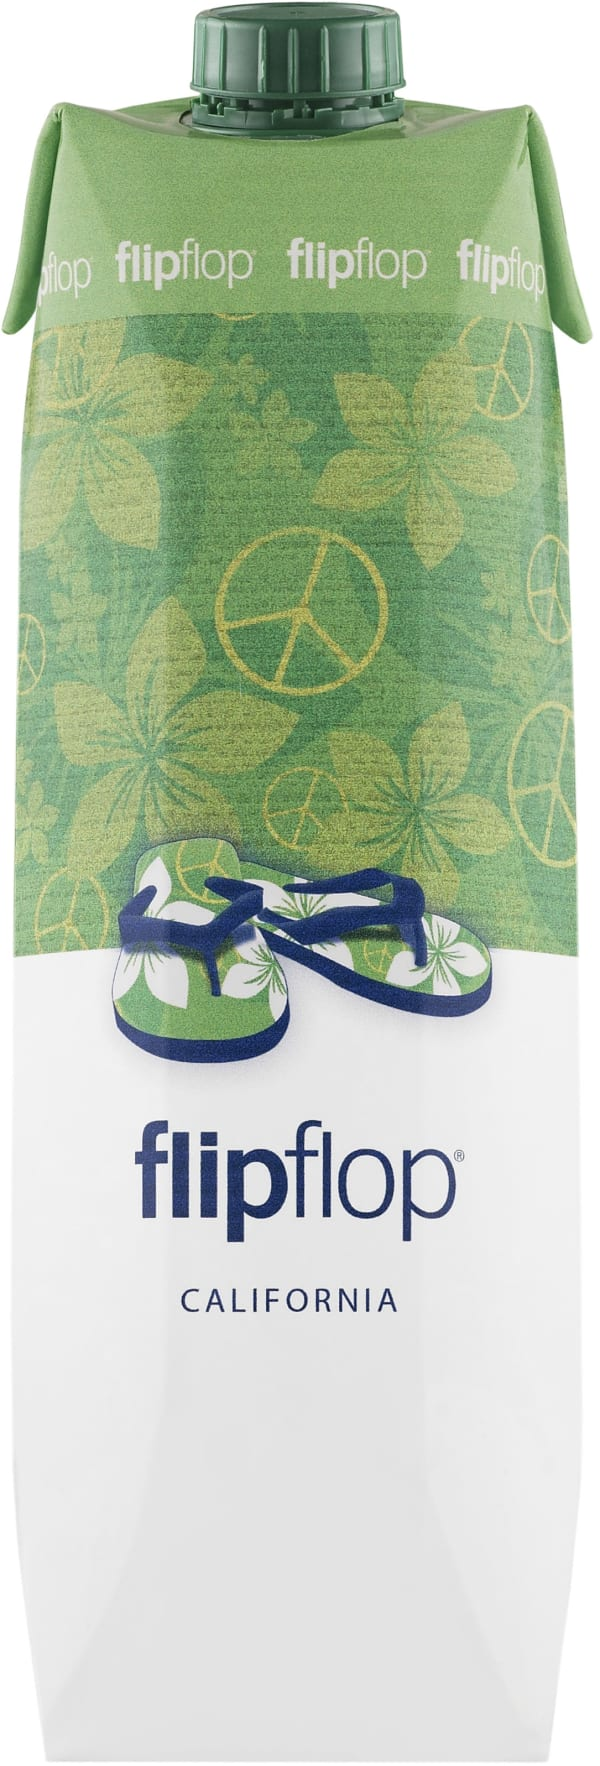 FlipFlop Californian White 2016 carton package